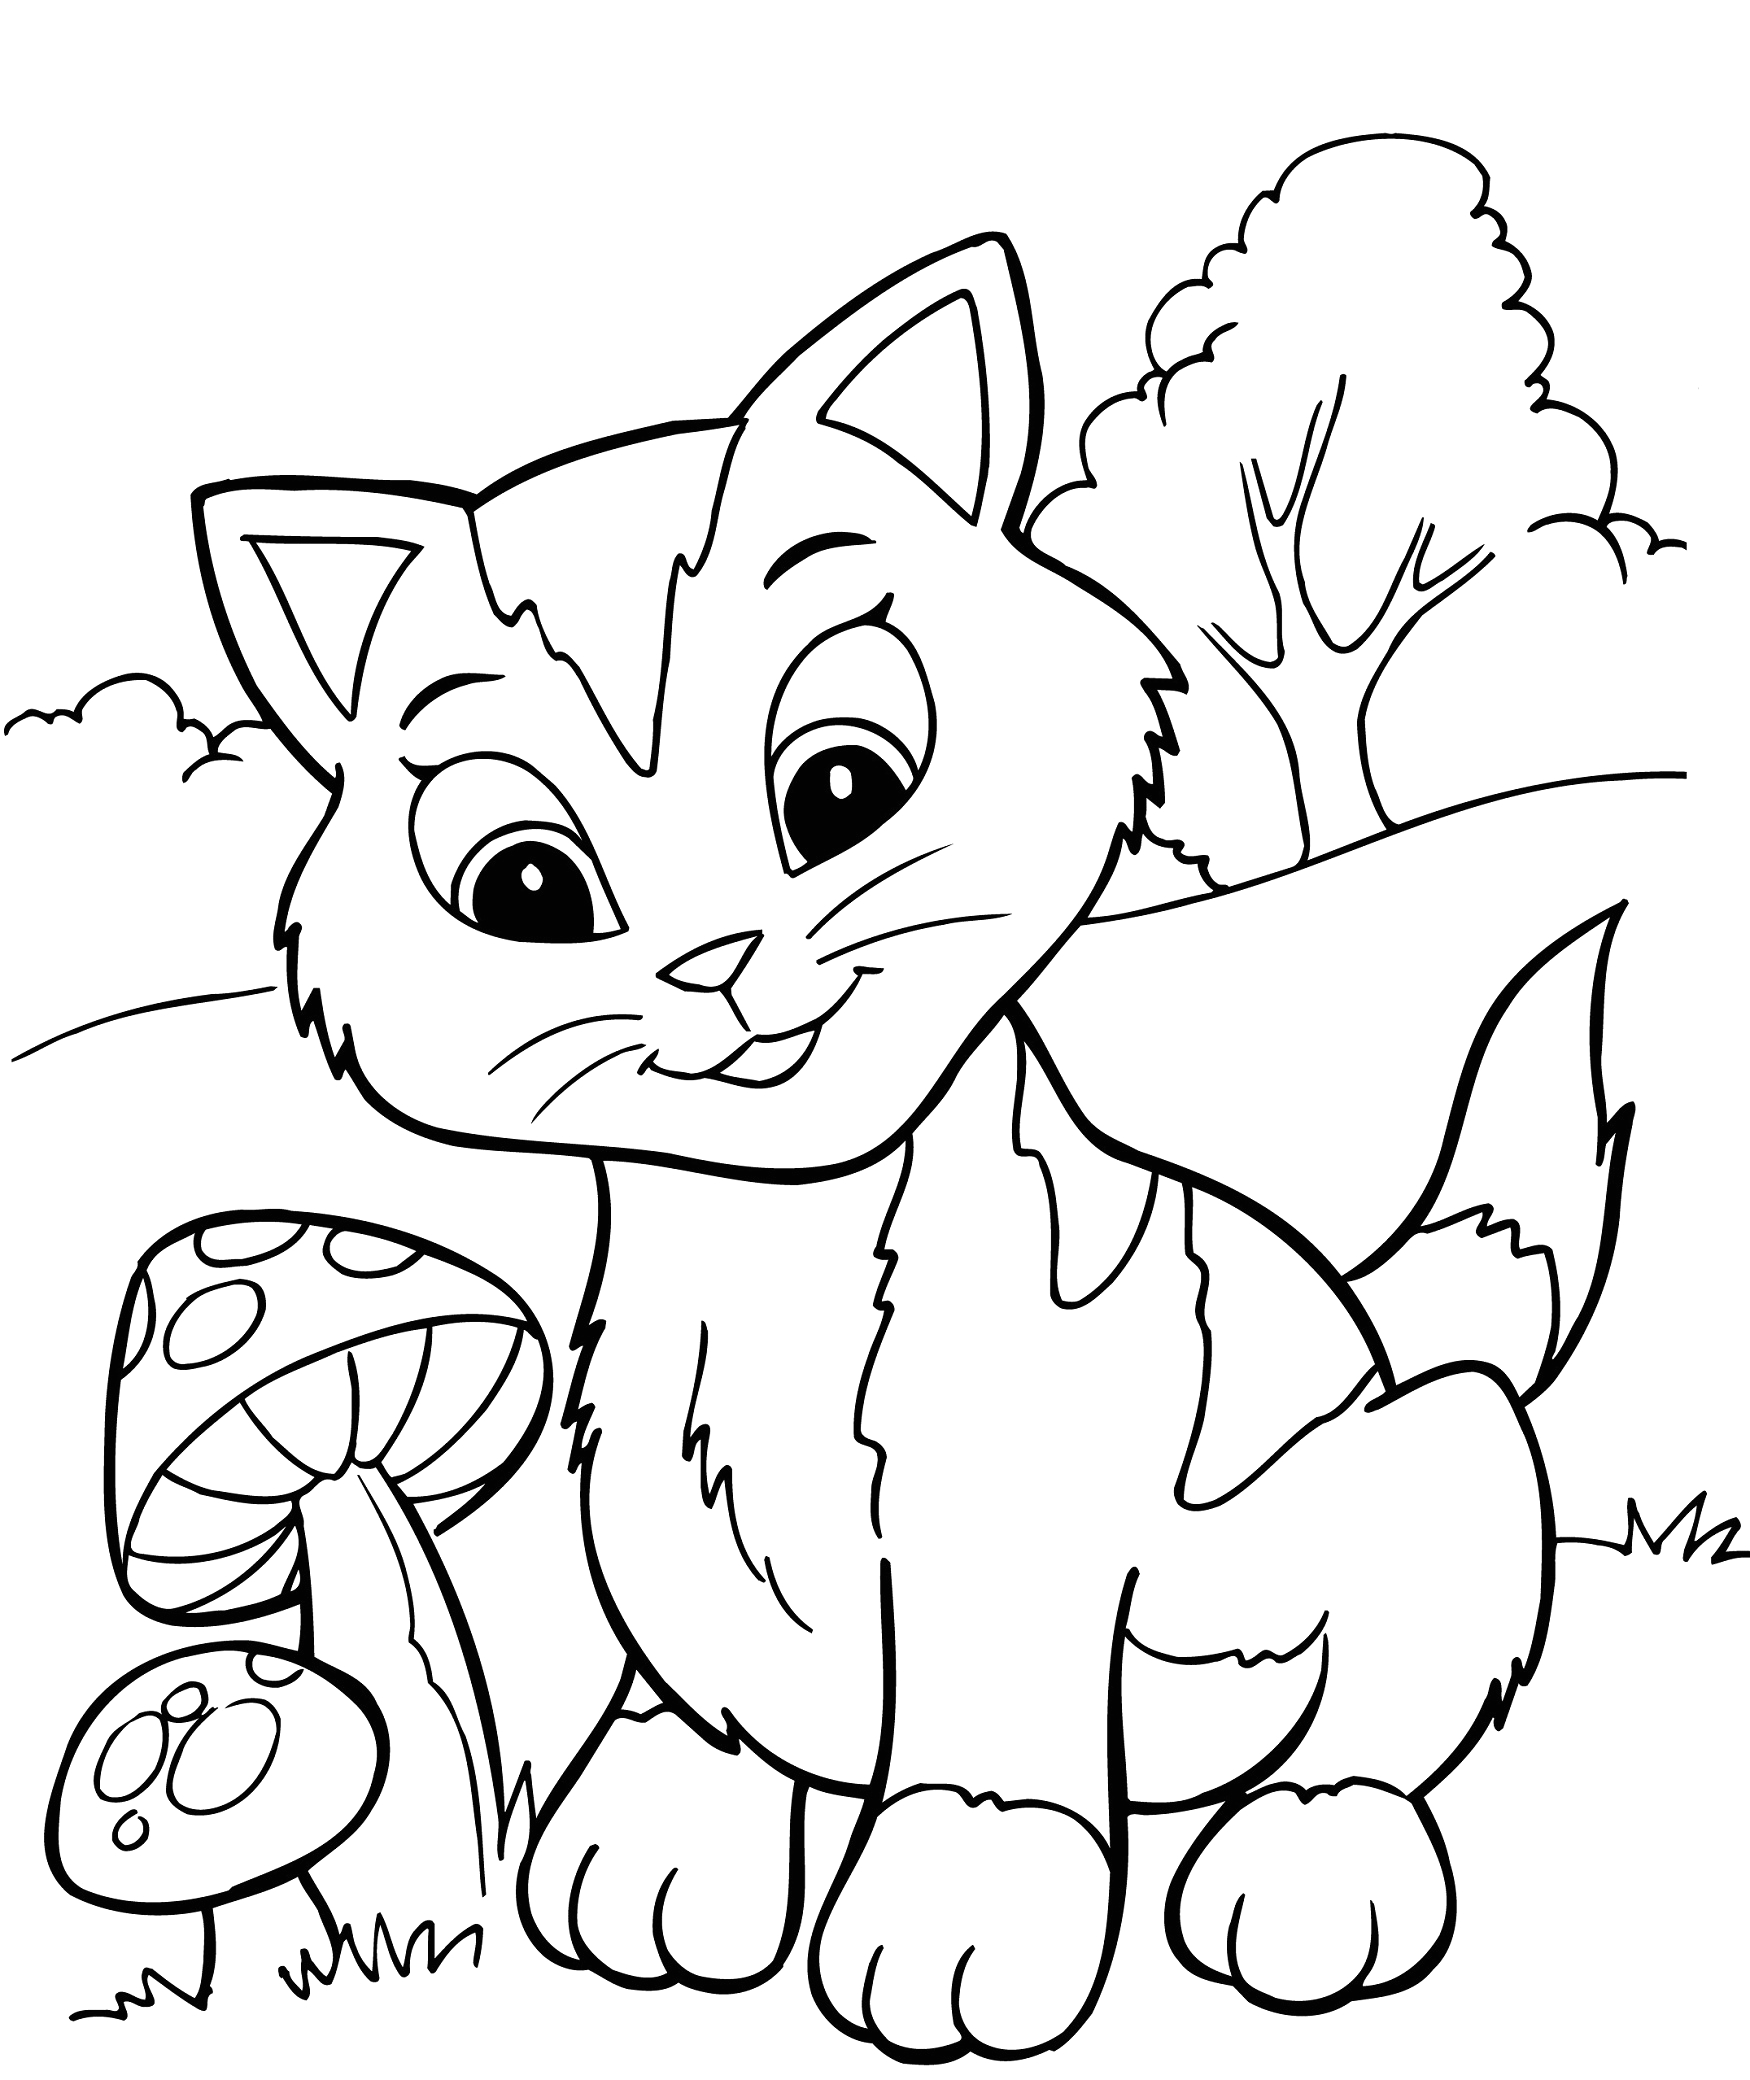 Cat Coloring Pages for Kids to Print Free Printable Kitten Coloring Pages for Kids Best